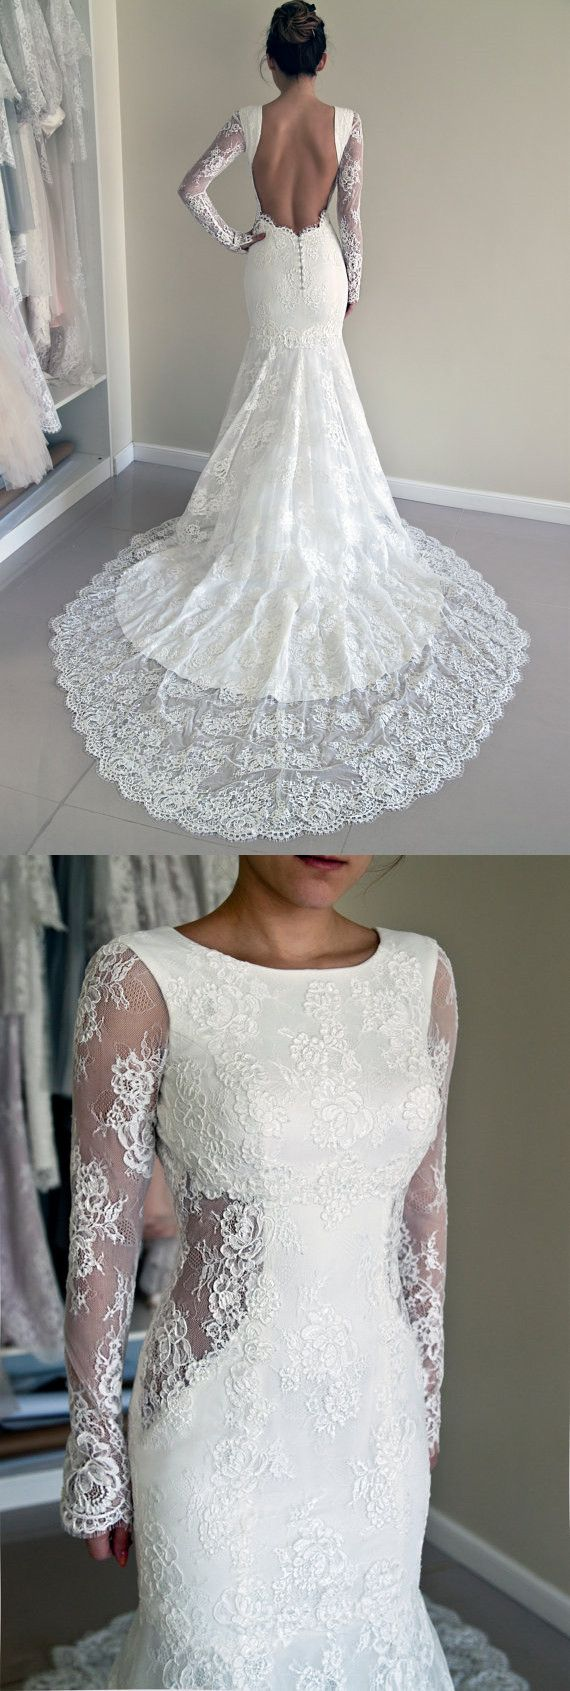 #wedding #lace 2016 wedding dresses, fall wedding dresses, white lace wedding…